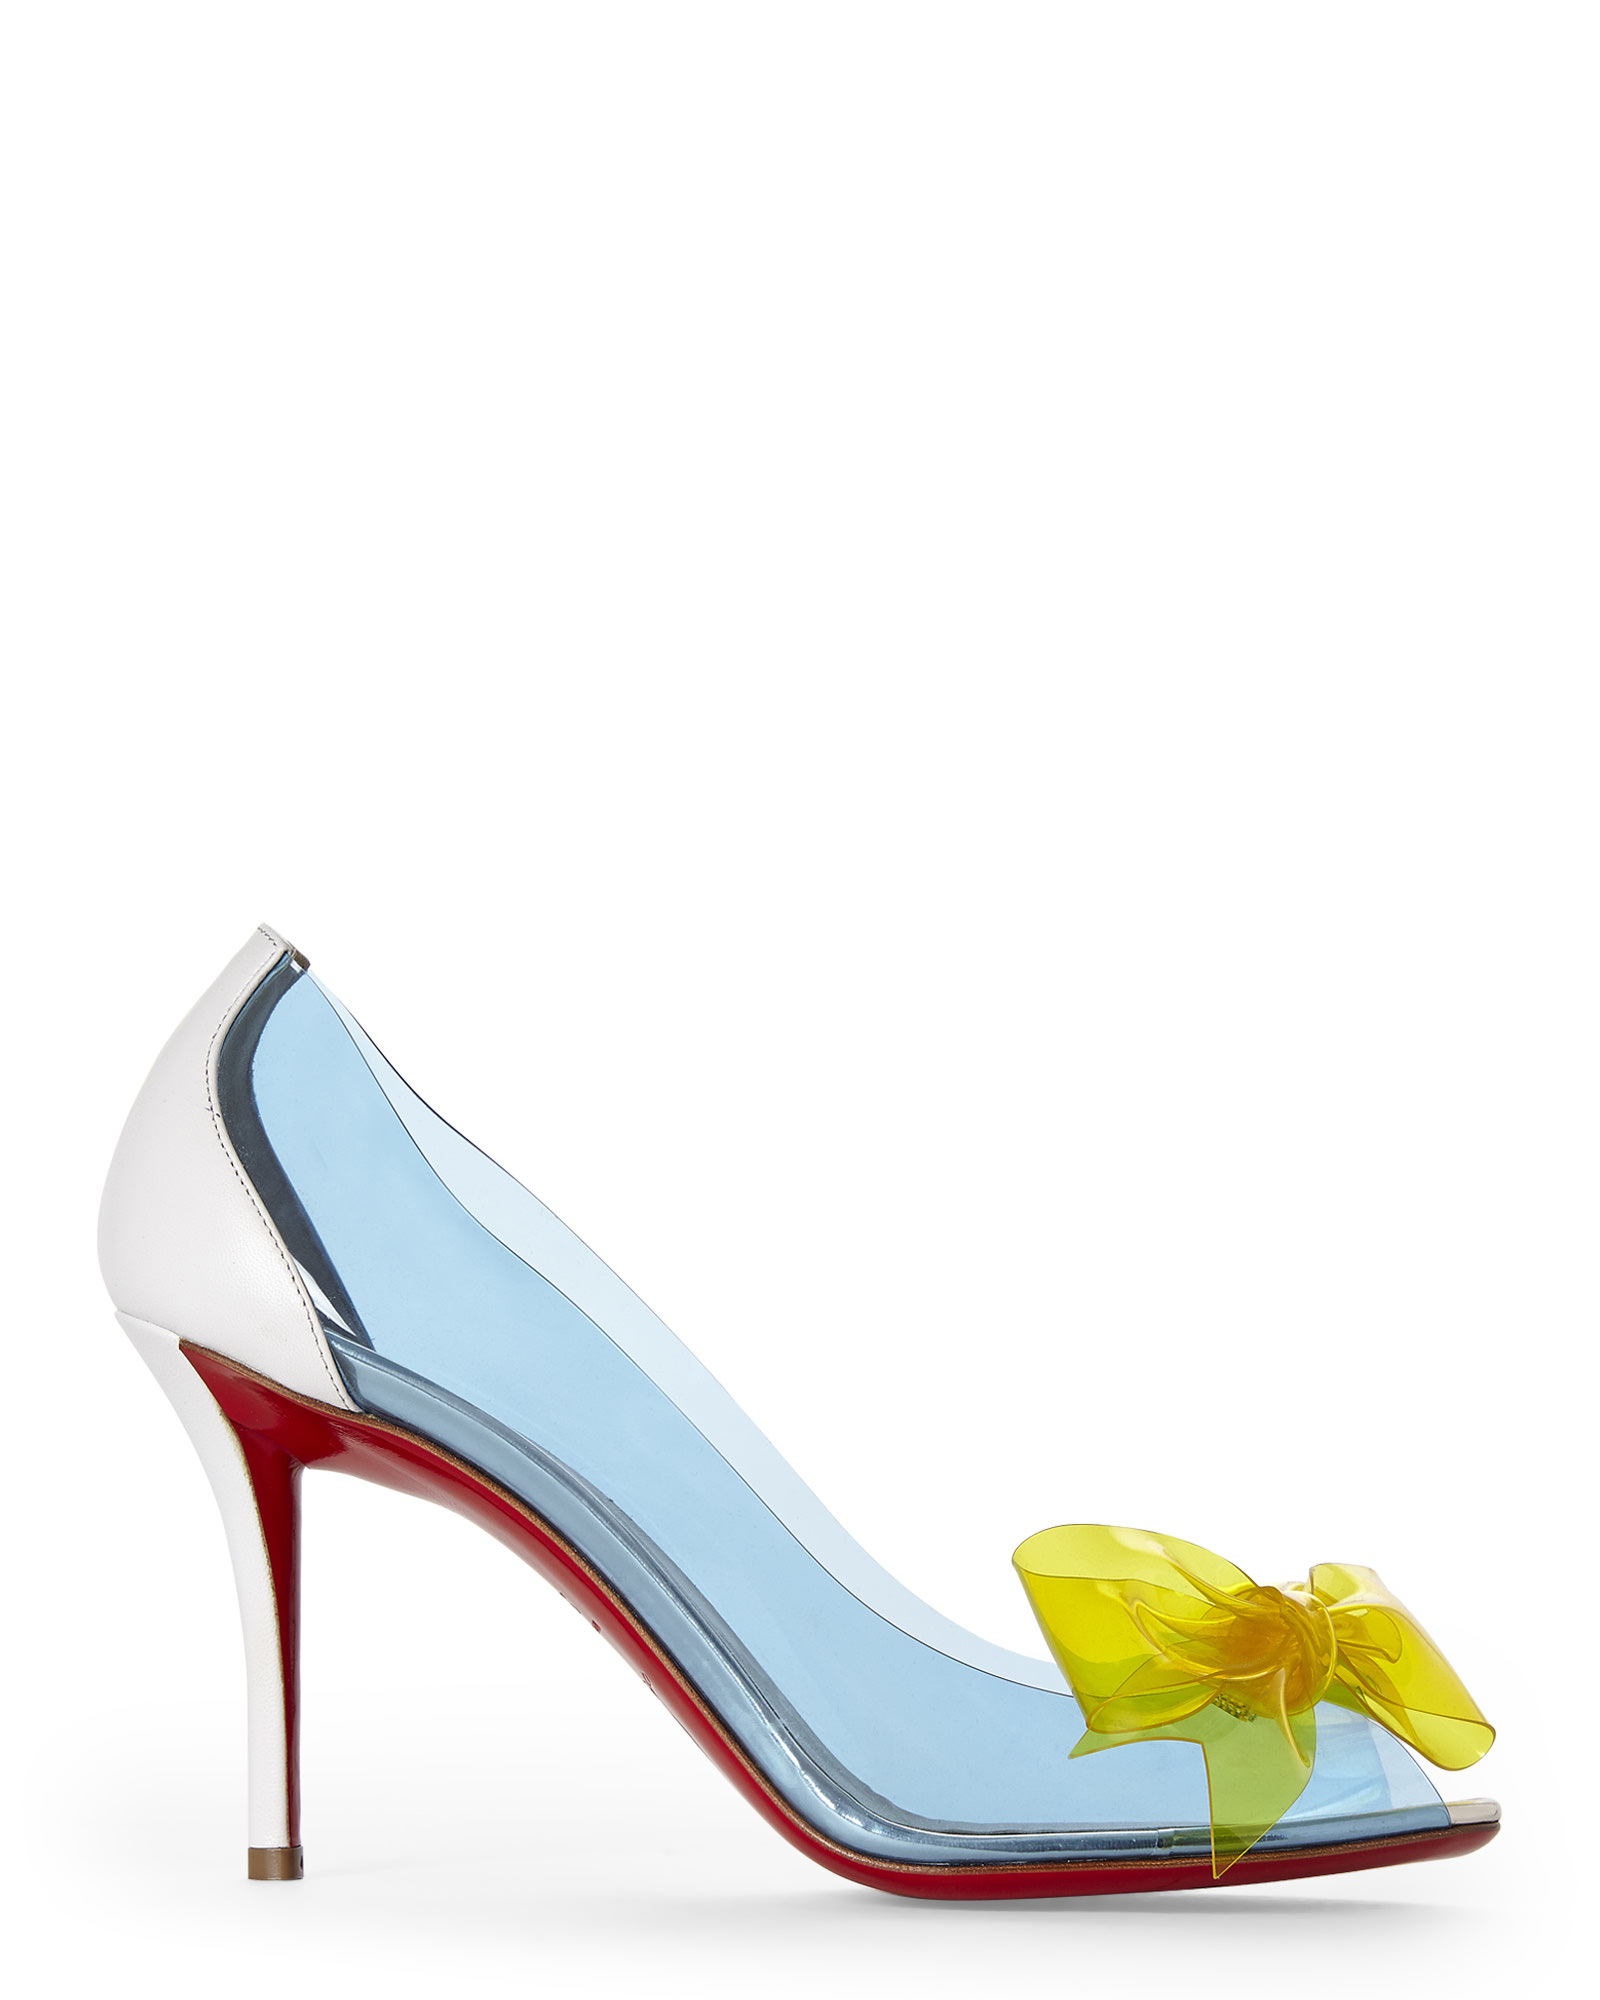 christian louboutin mens shoes sale - christian louboutin pointed-toe slingback pumps Pink and ...